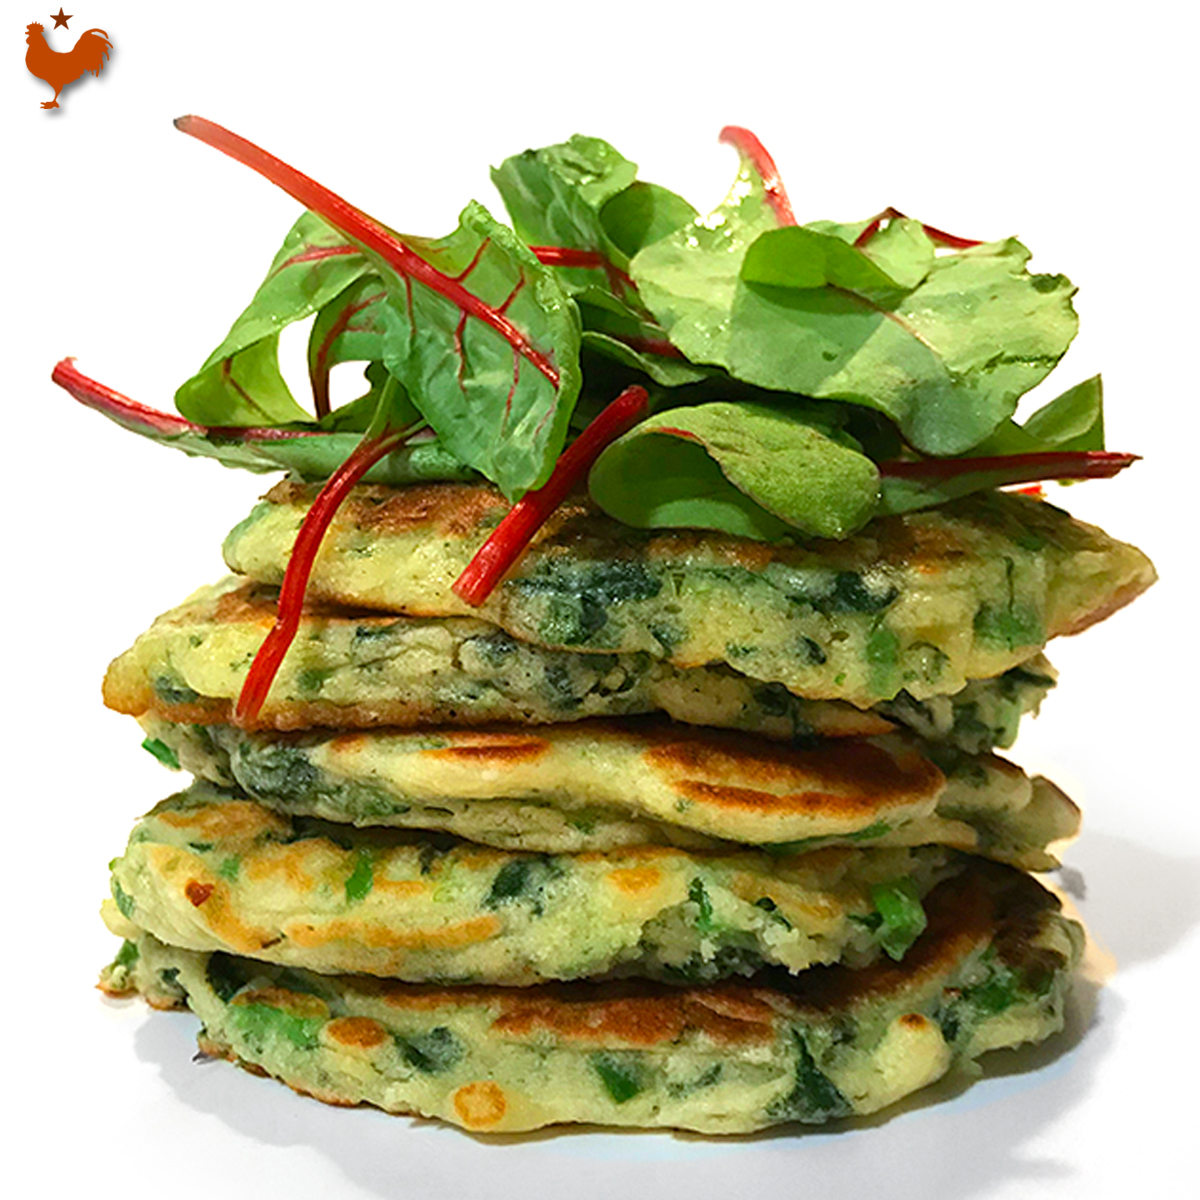 Yotam Ottolenghi's Savory Green Pancakes with Lime Butter